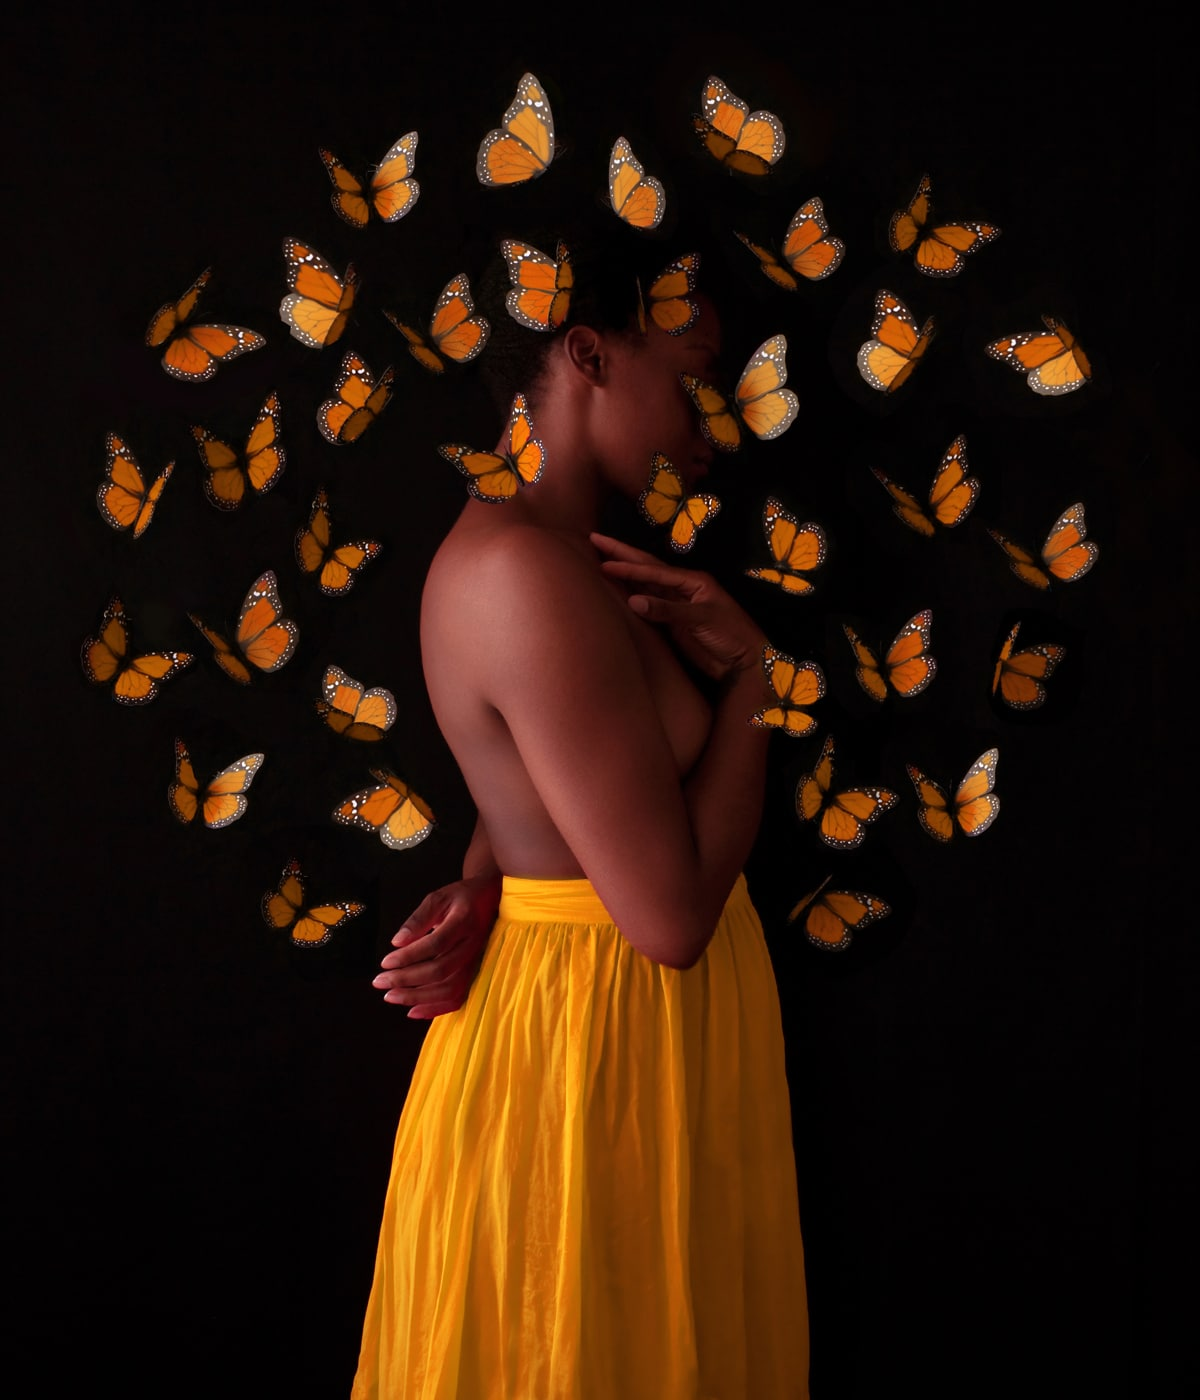 Girl Surrounded by Butterflied by Fares Micue